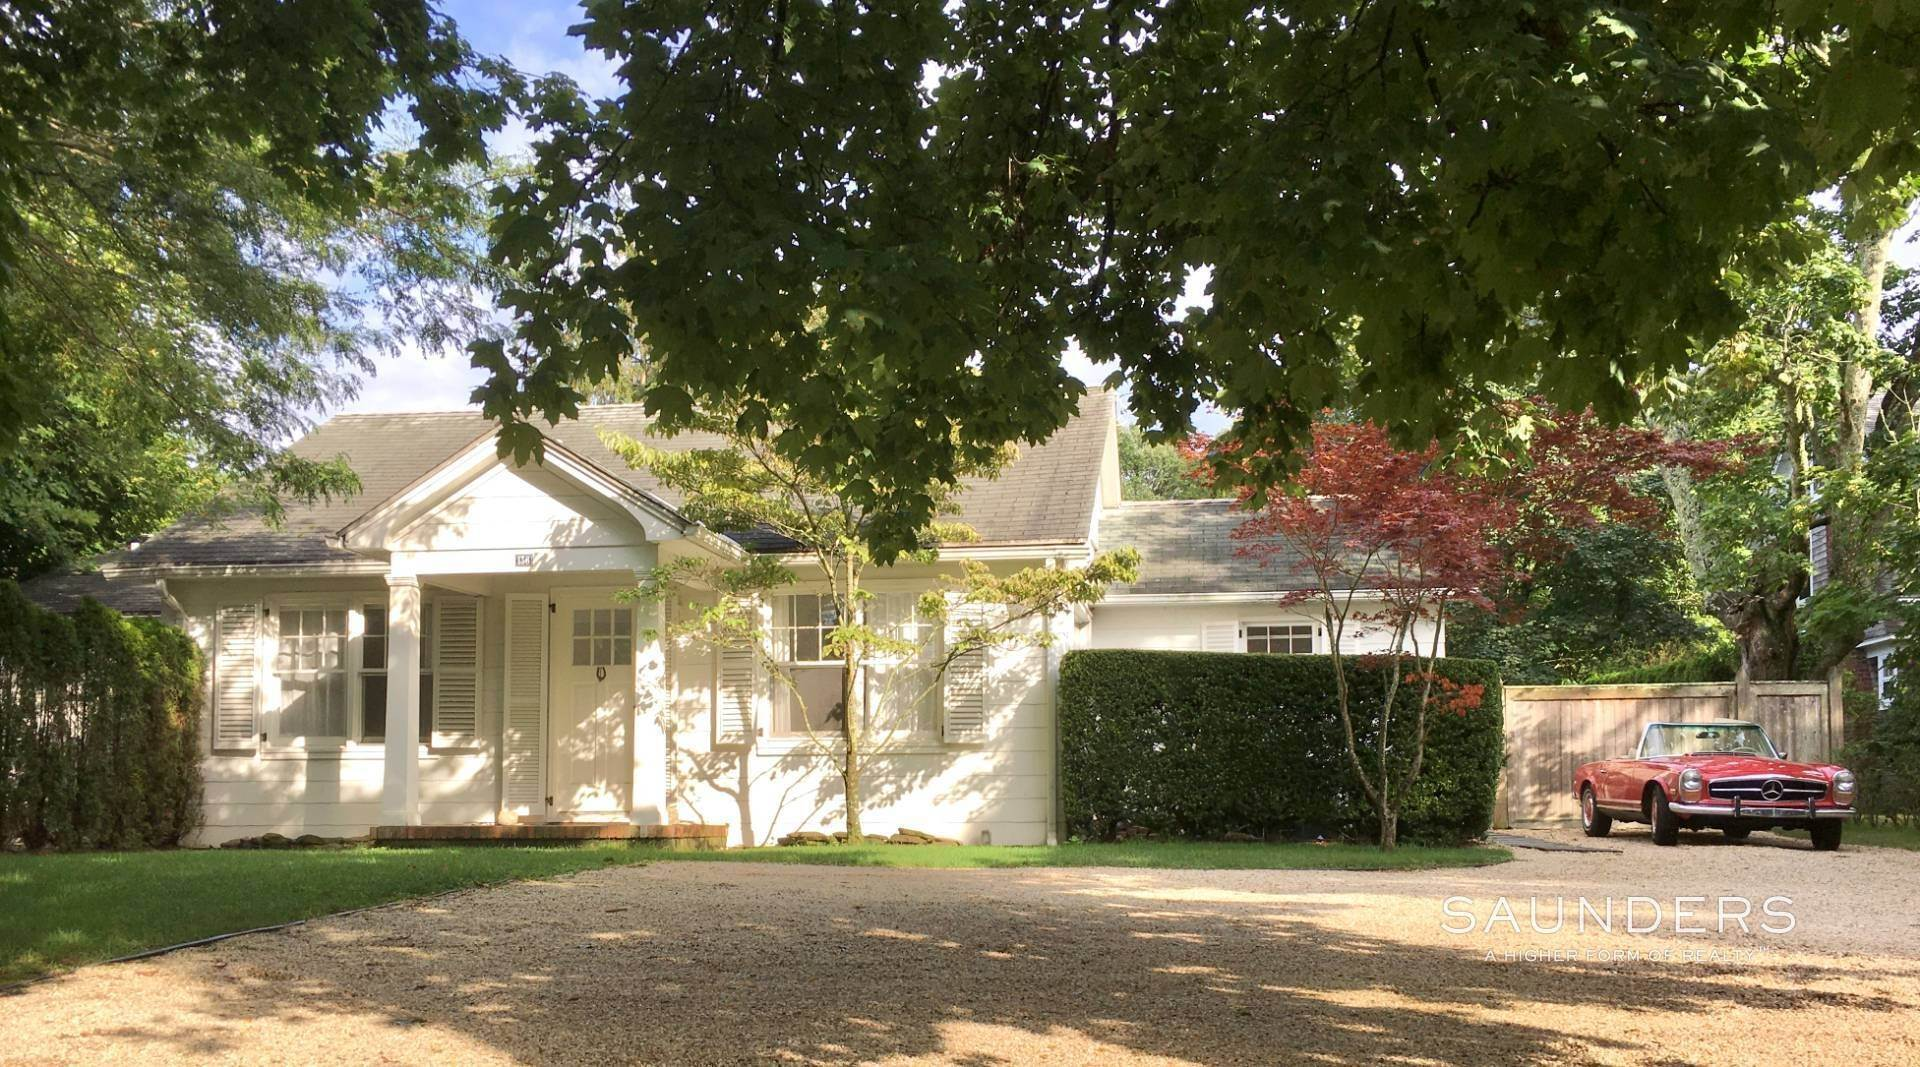 3. Single Family Homes for Sale at South Of Highway - Turnkey Charmer 136 Cove Hollow Road, East Hampton, East Hampton Town, NY 11937